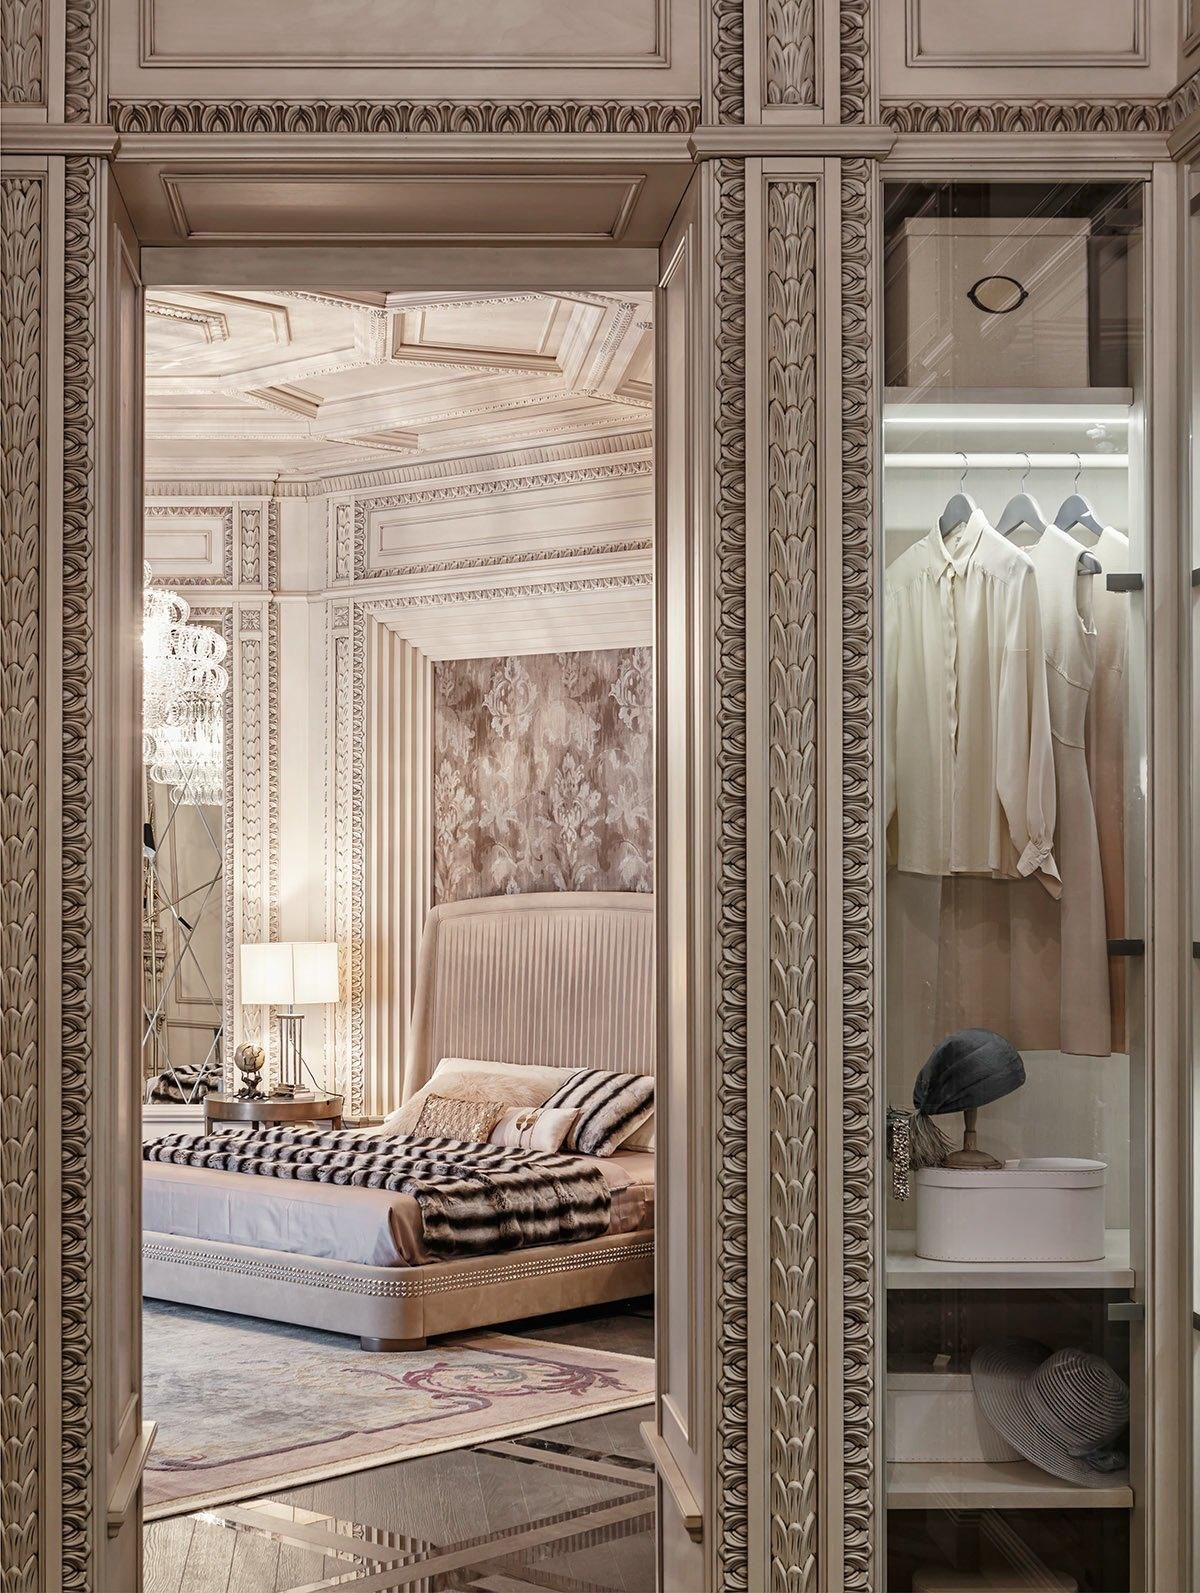 With so much emphasis on sleek modern spaces it   nice to enjoy  little extravagant inspiration from time the two homes explored below share many also neoclassical and art deco features in luxurious interiors rh pinterest